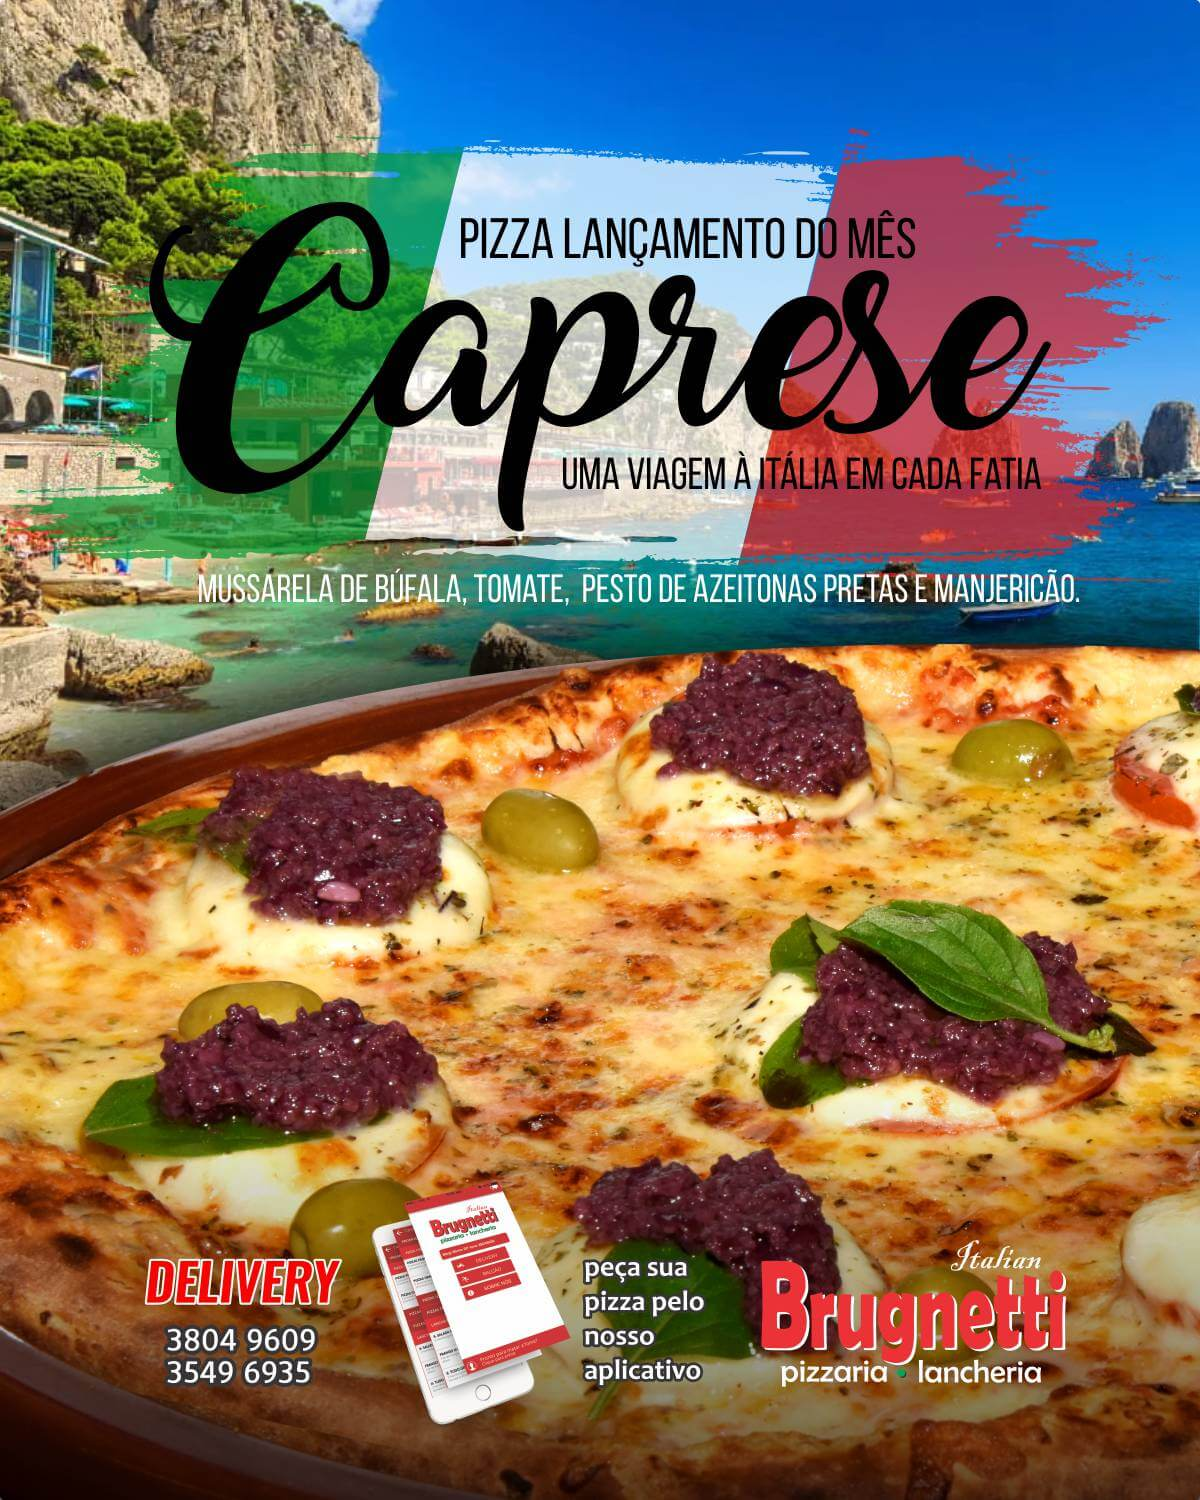 PIZZA-DO-MES-CAPRESE